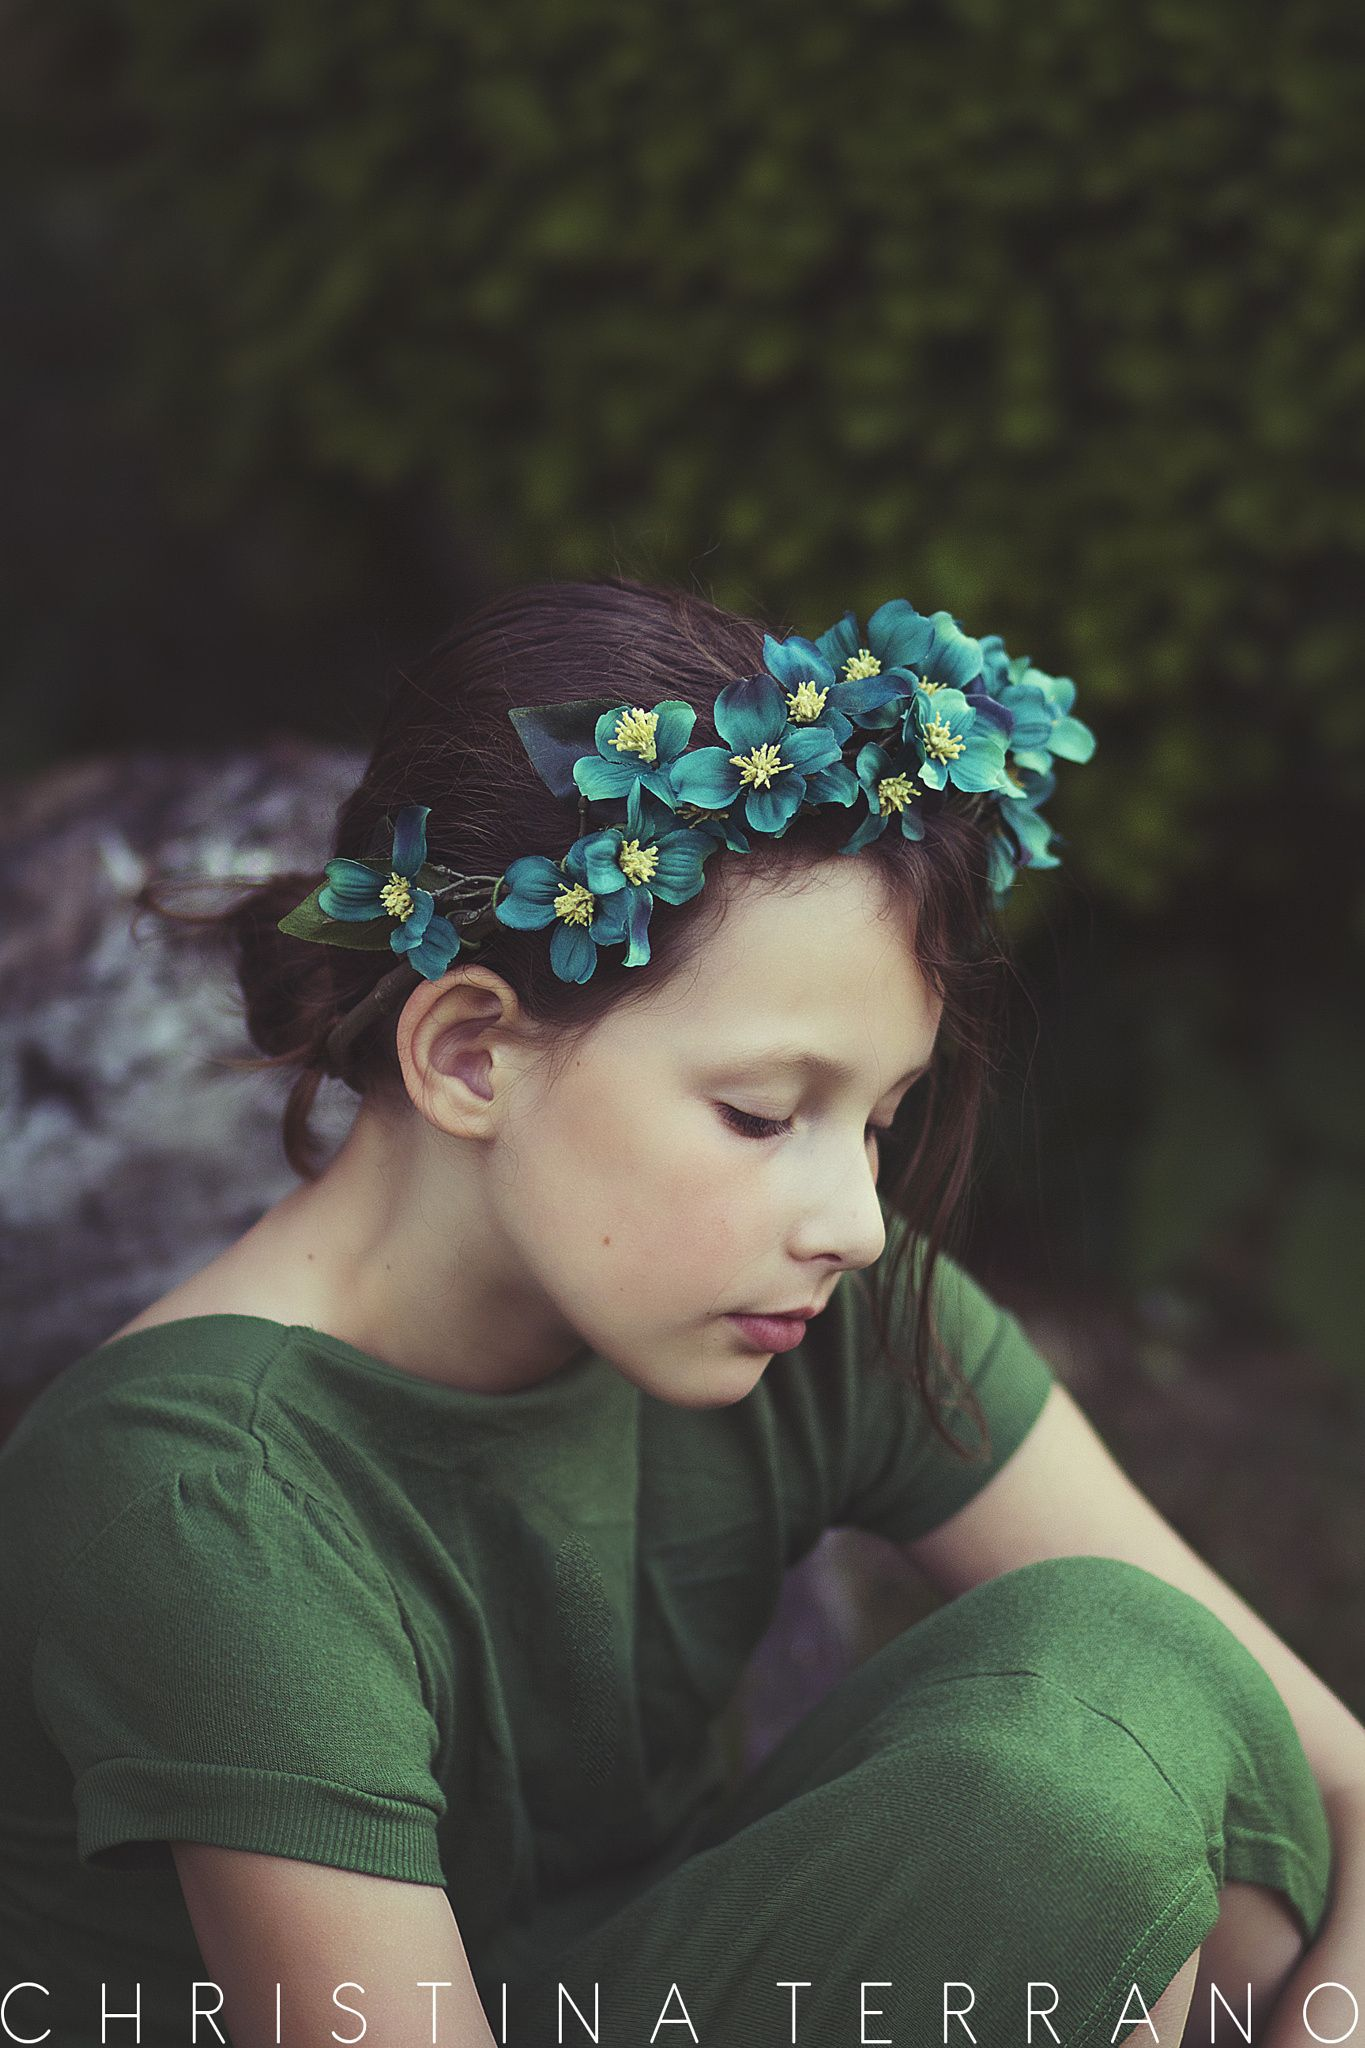 Midsummer's Dream | 2 by Christina Terrano on 500px